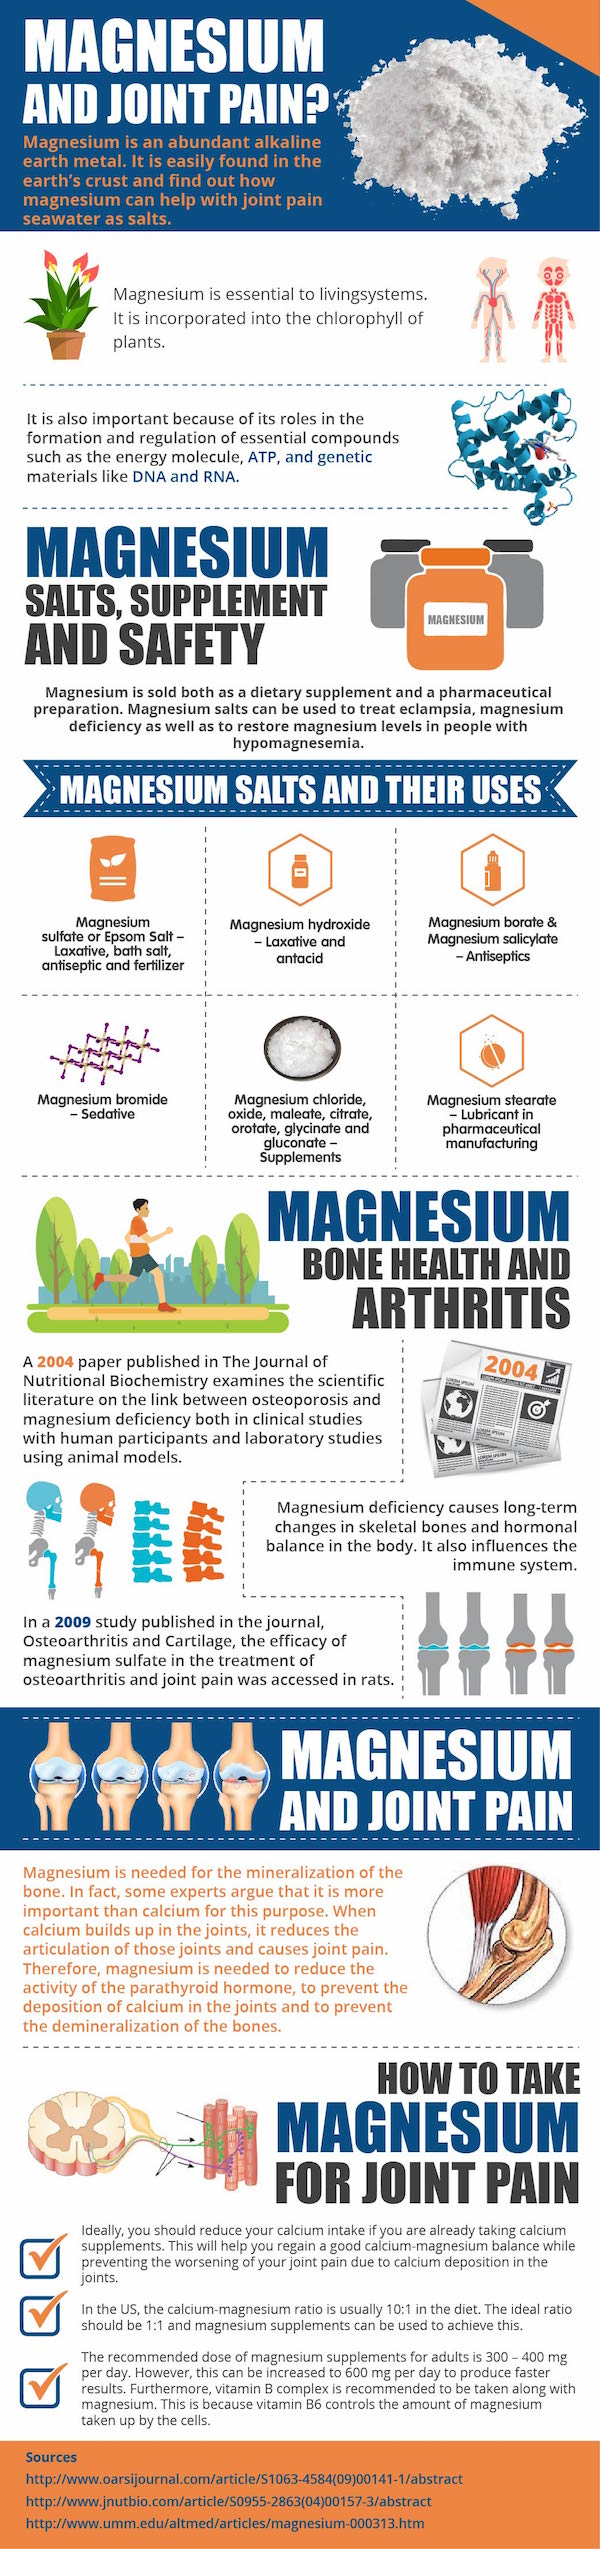 Magnesium Joint Pain